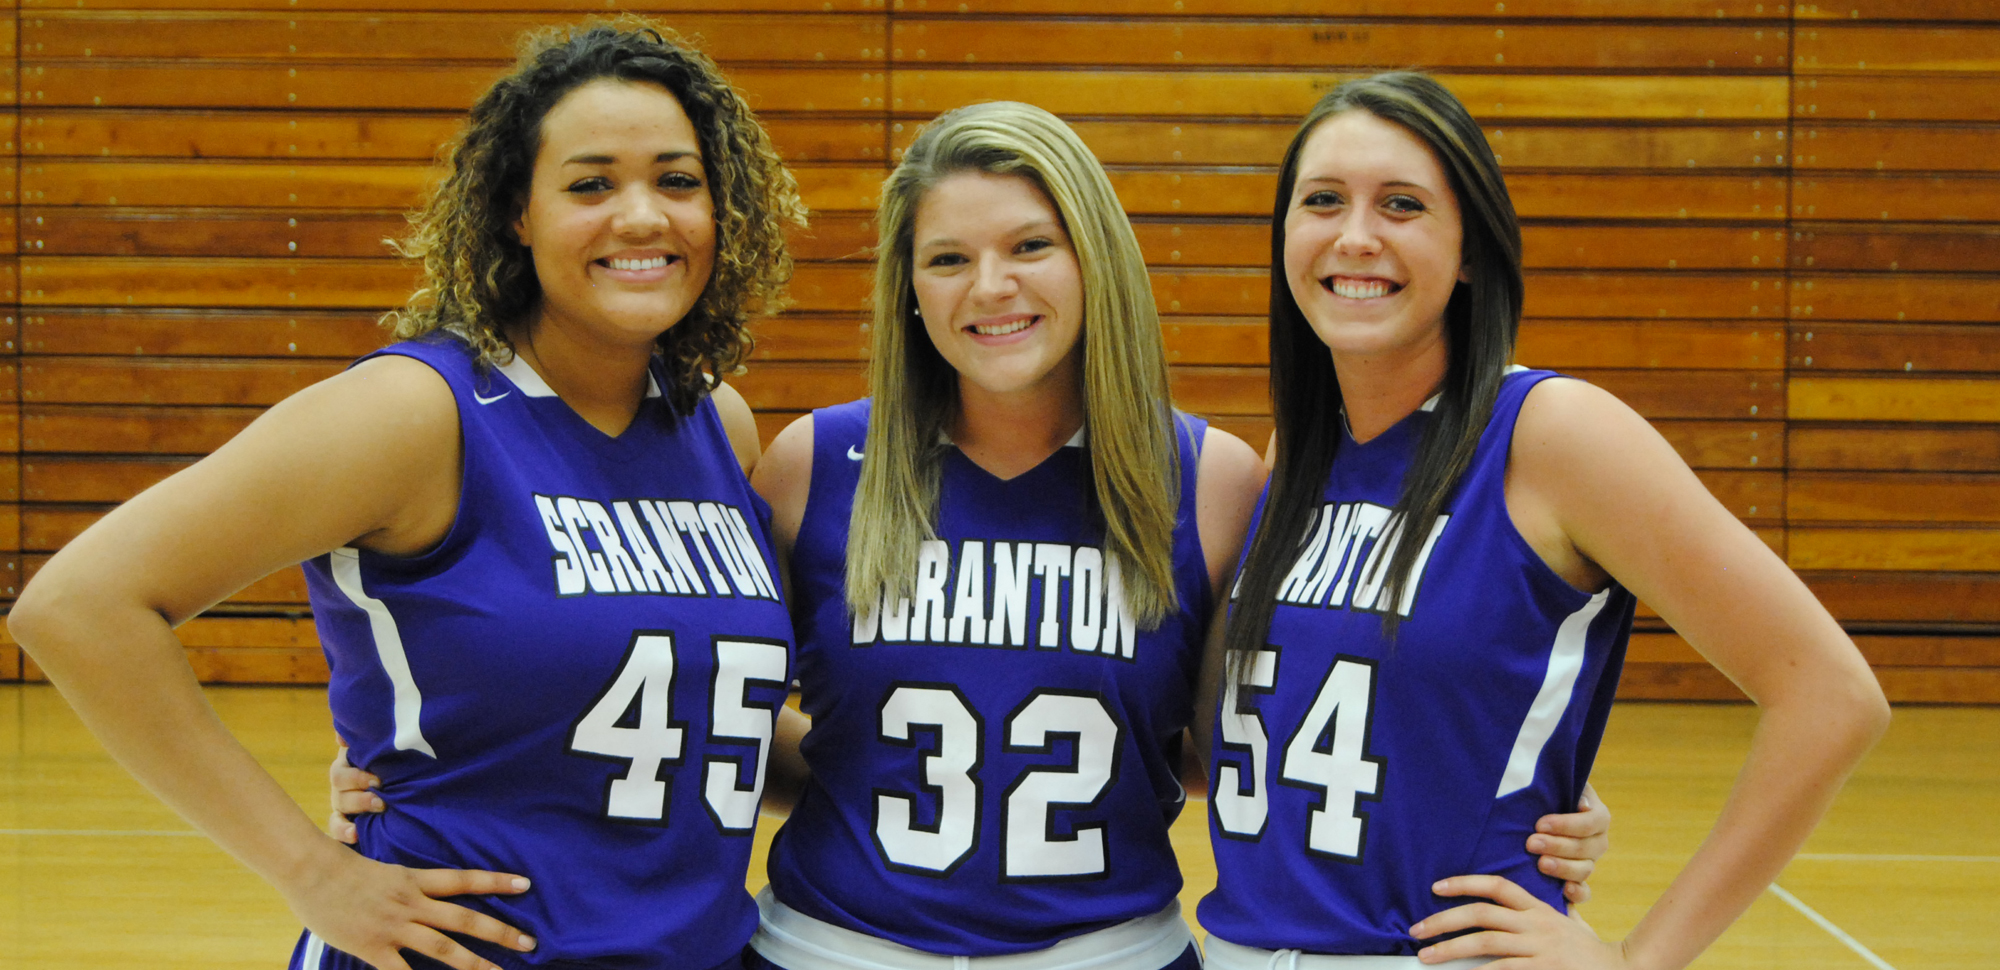 Seniors Alexix Roman, Denise Rizzo and Sarah Payonk will be honored before tip-off on Saturday for their contributions to the Scranton women's basketball program over the last four years.